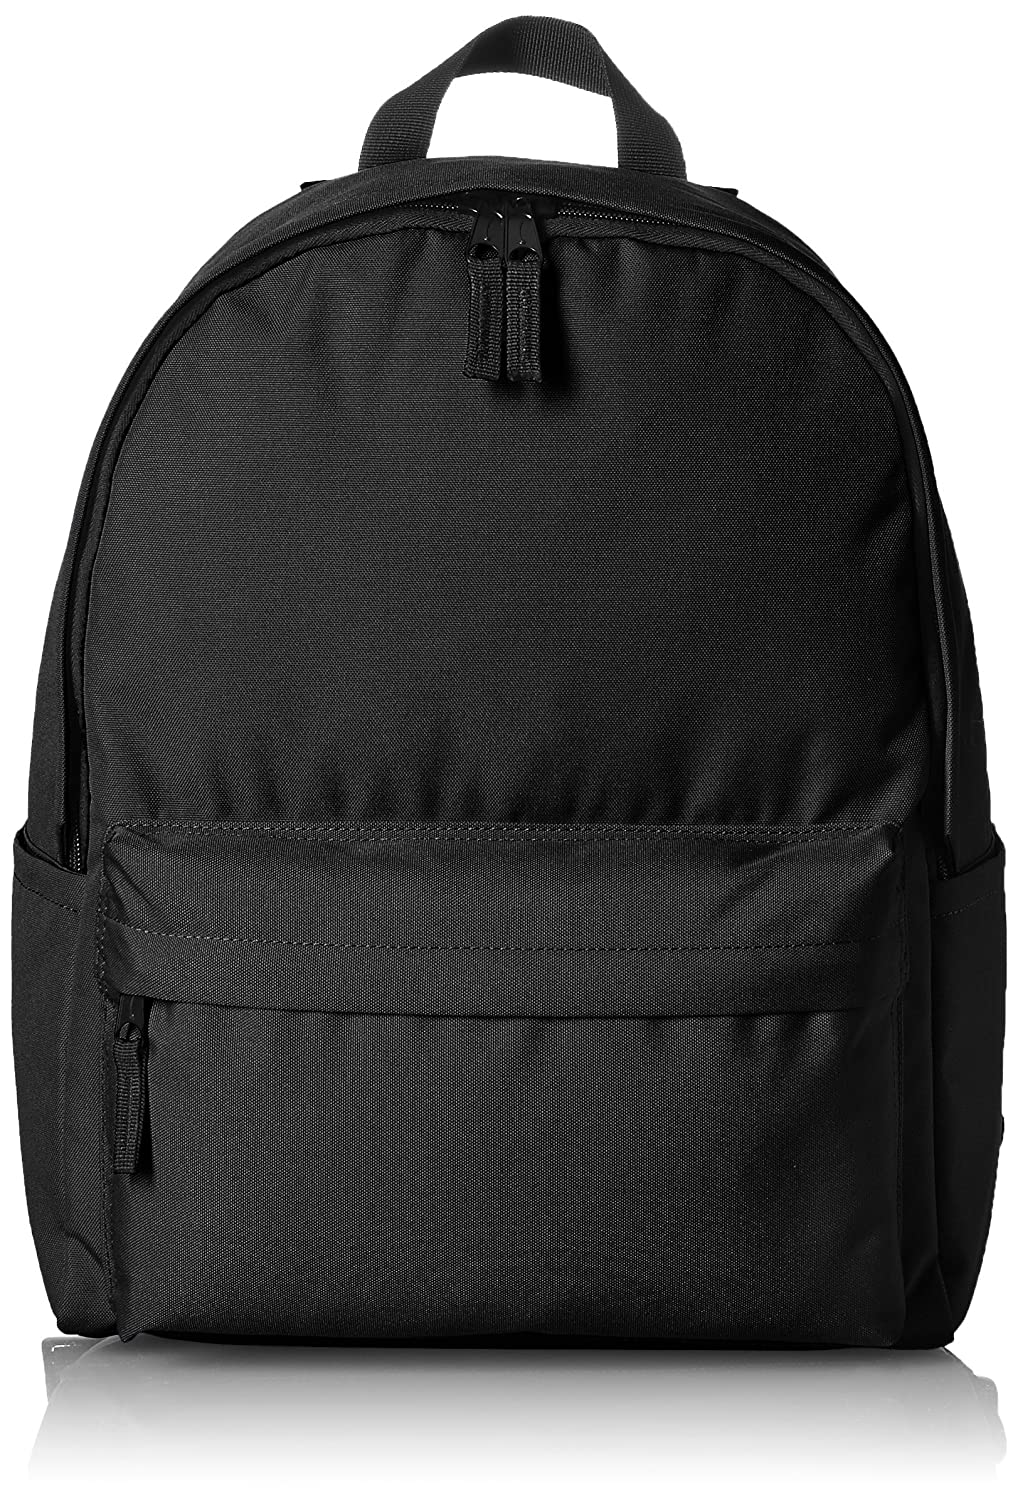 Amazonbasics Classic School Backpack - Black